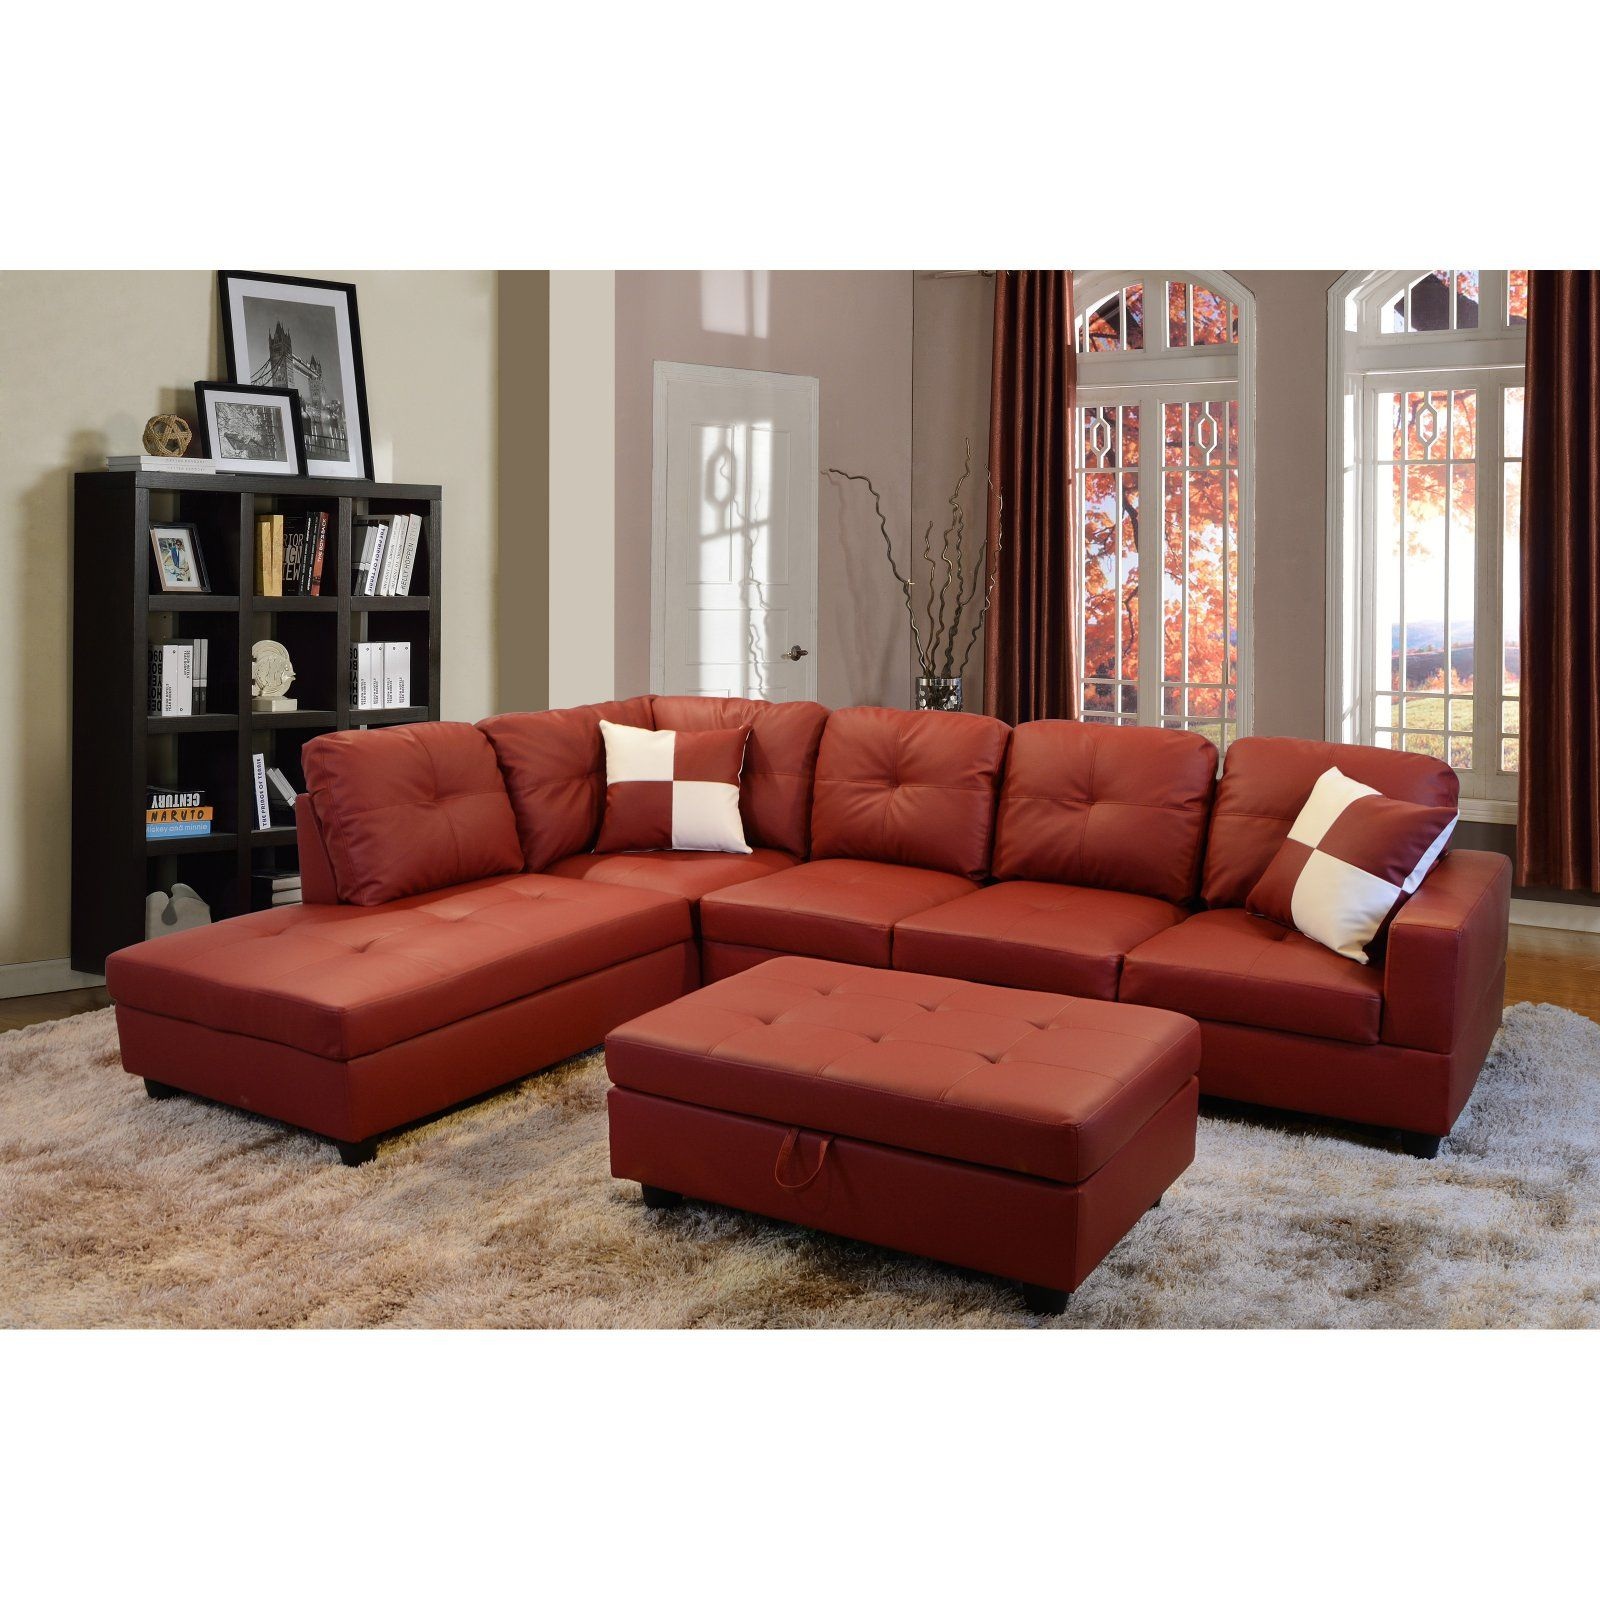 Pleasant Beverly Fine Furniture 3 Piece Faux Leather Sectional Sofa Lamtechconsult Wood Chair Design Ideas Lamtechconsultcom